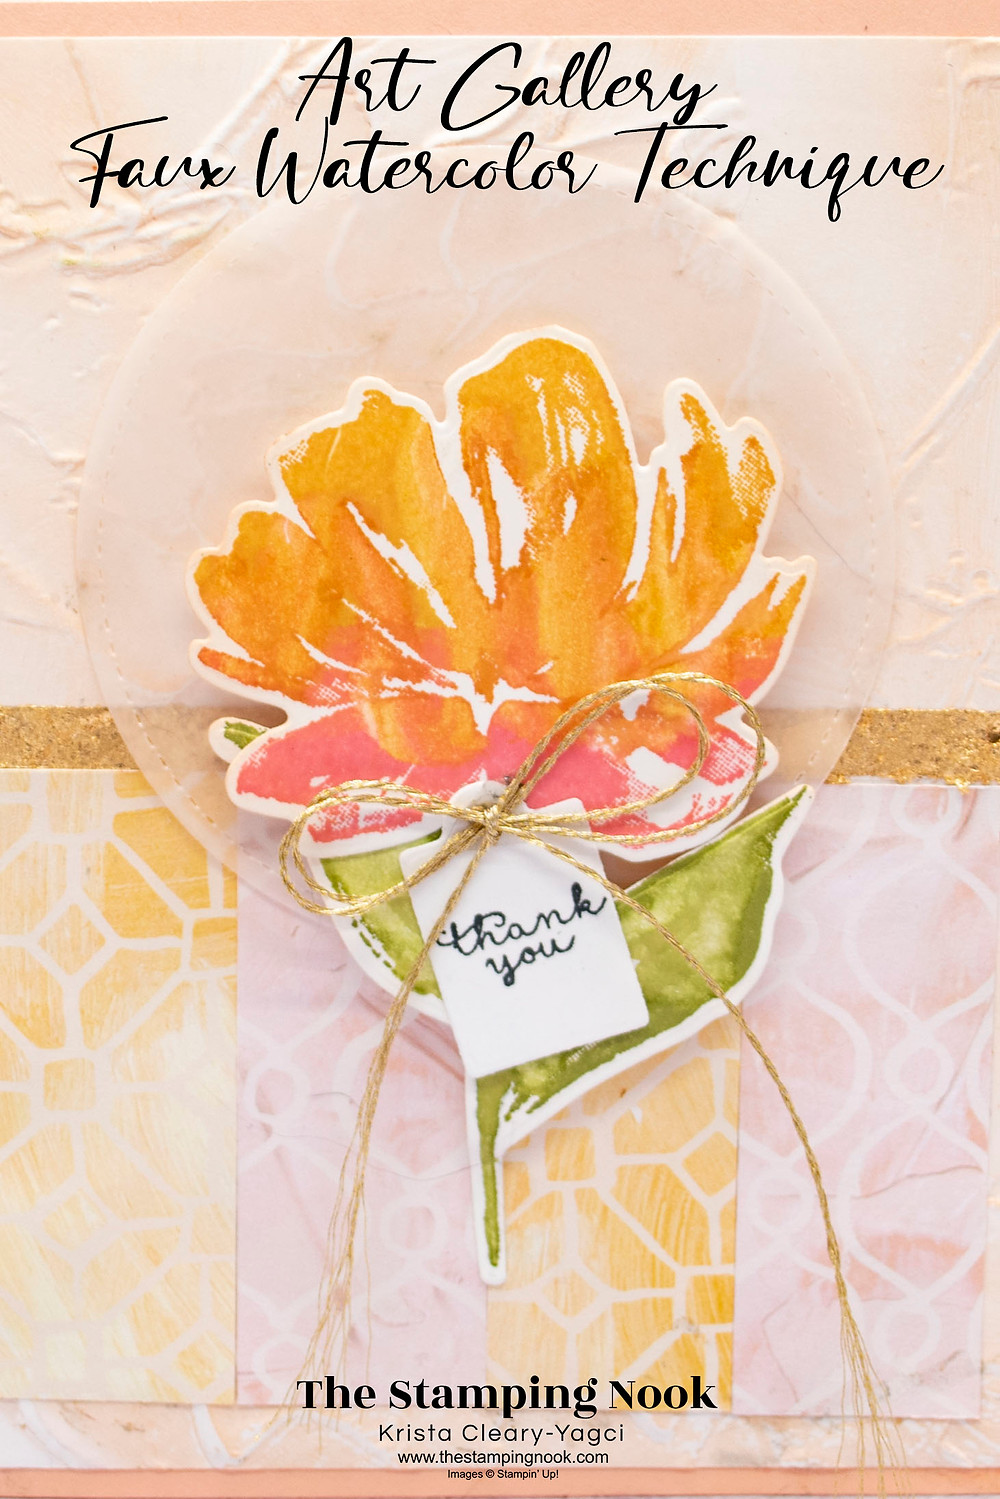 Stampin' Up! Card Ideas - Stampin Up Card Ideas – Art Gallery Stamp Set - Fine Art Floral - Art Gallery Ideas – Art Gallery Stampin Up - Stampin Up Mini Catalog - The Stamping Nook - Krista Cleary-Yagci